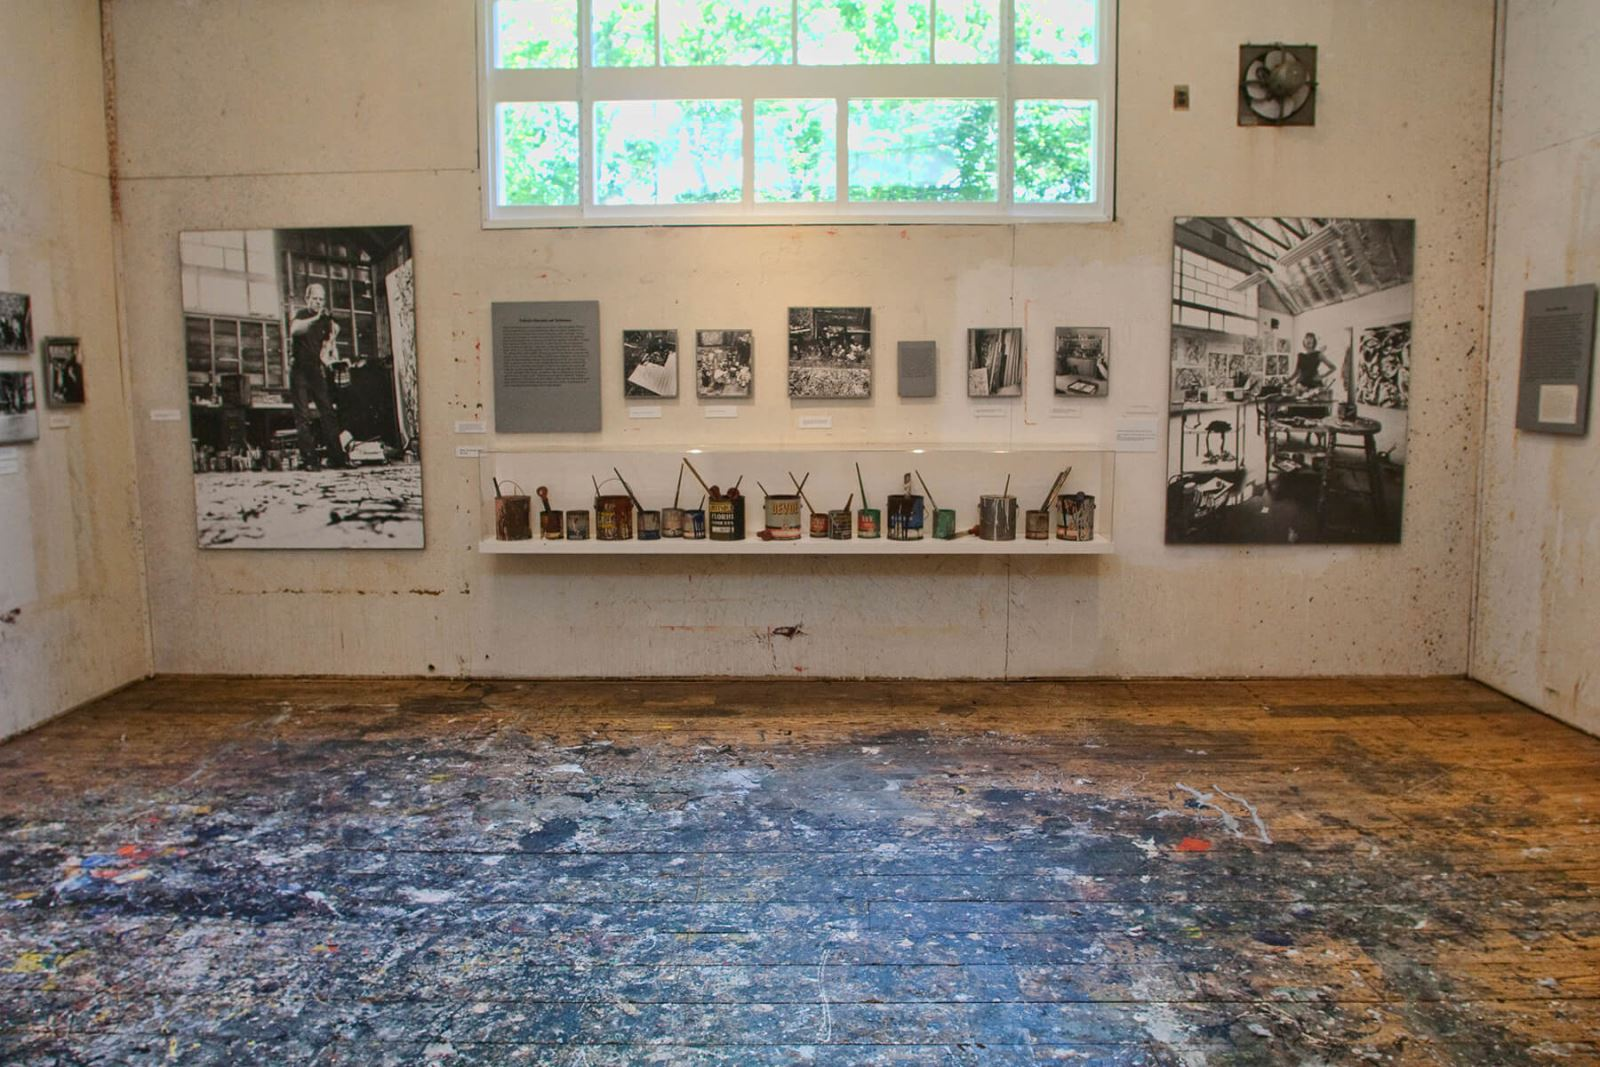 THE SHARED SPACE OF LEE KRASNER AND JACKSON POLLOCK